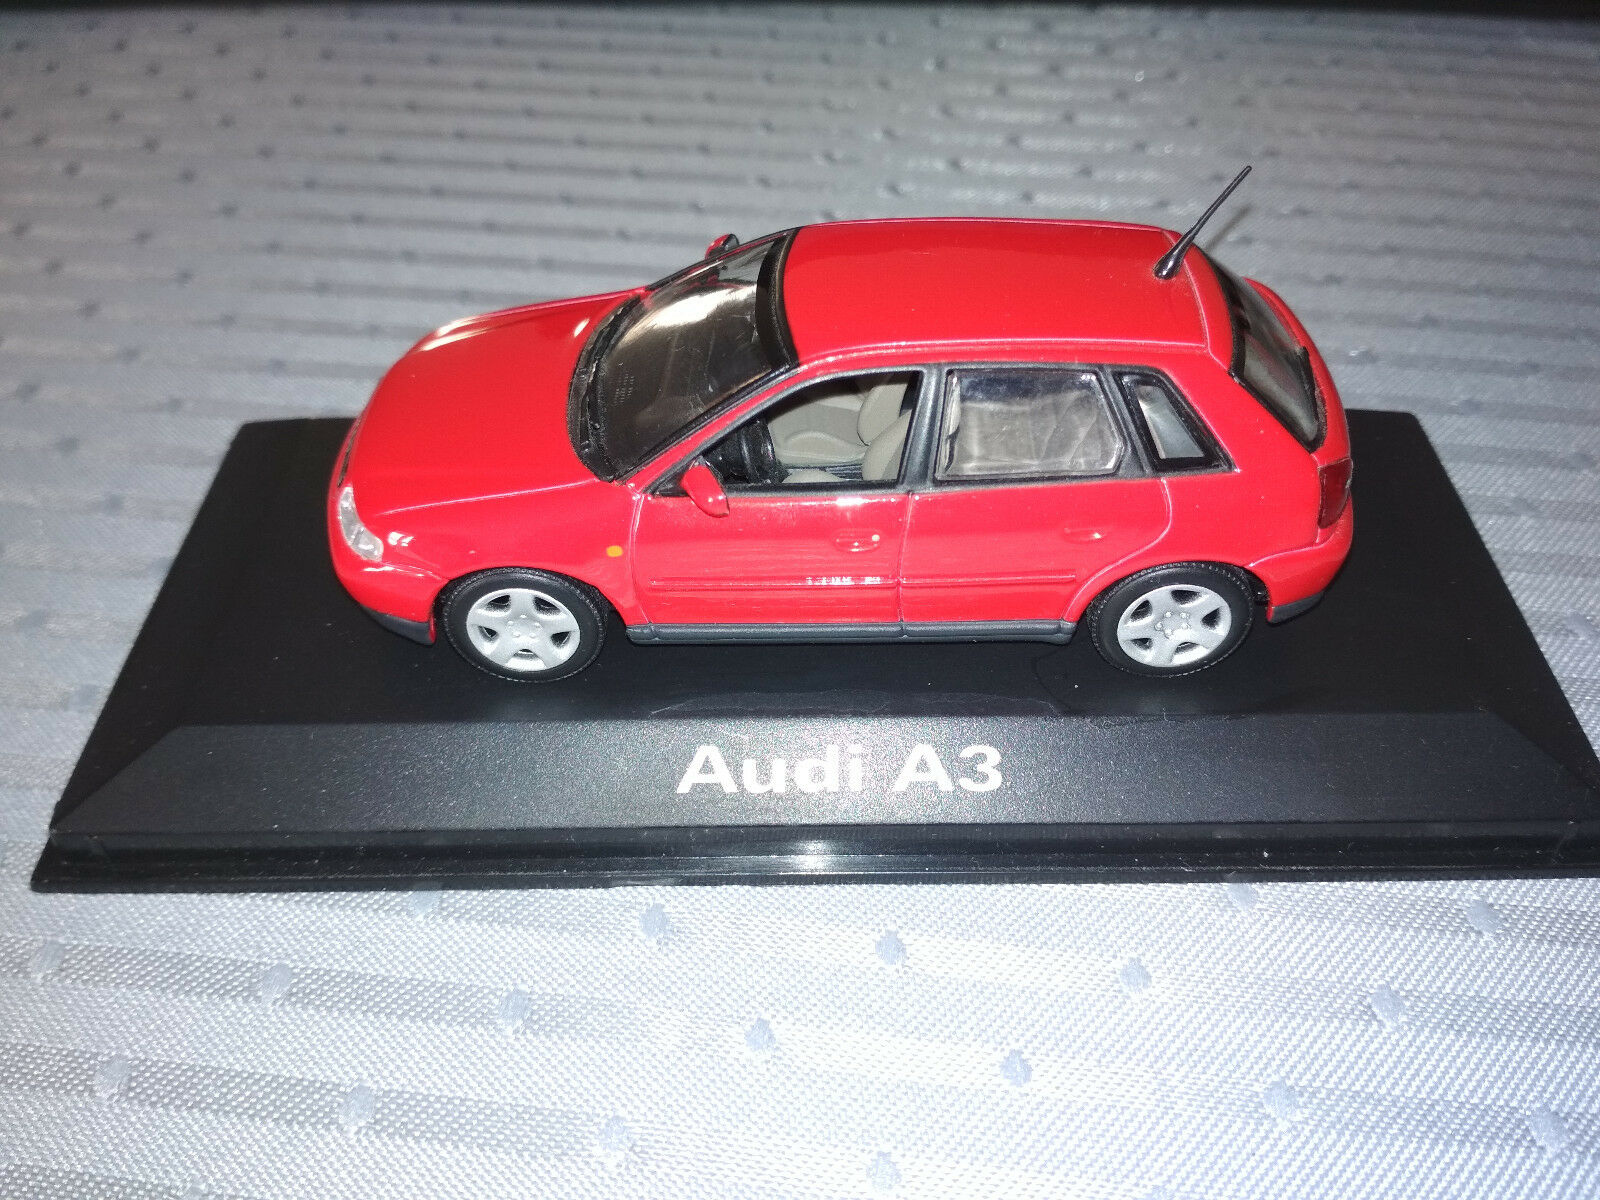 Audi A3 Type 8L 5-door 1996-03 Red 1 43 Minichamps